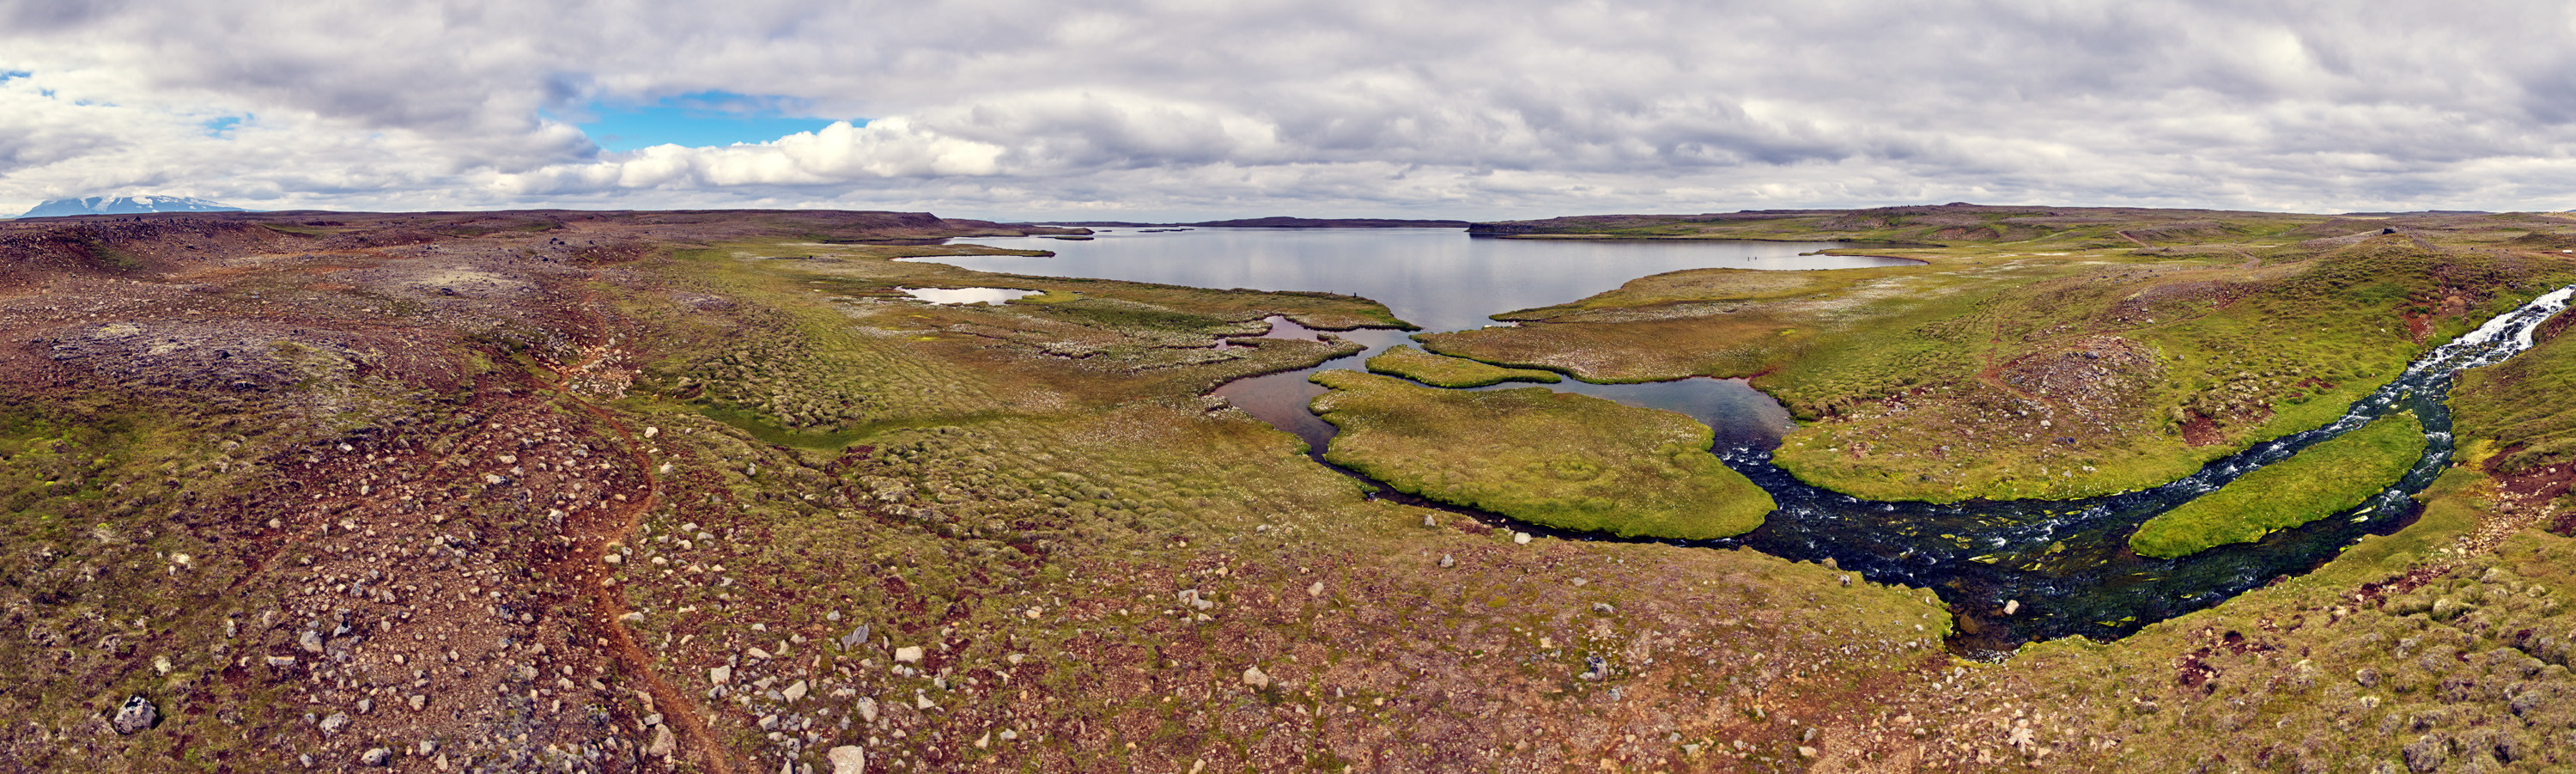 dronographica aerial imaging iceland island drone panorama vandfald droner drone